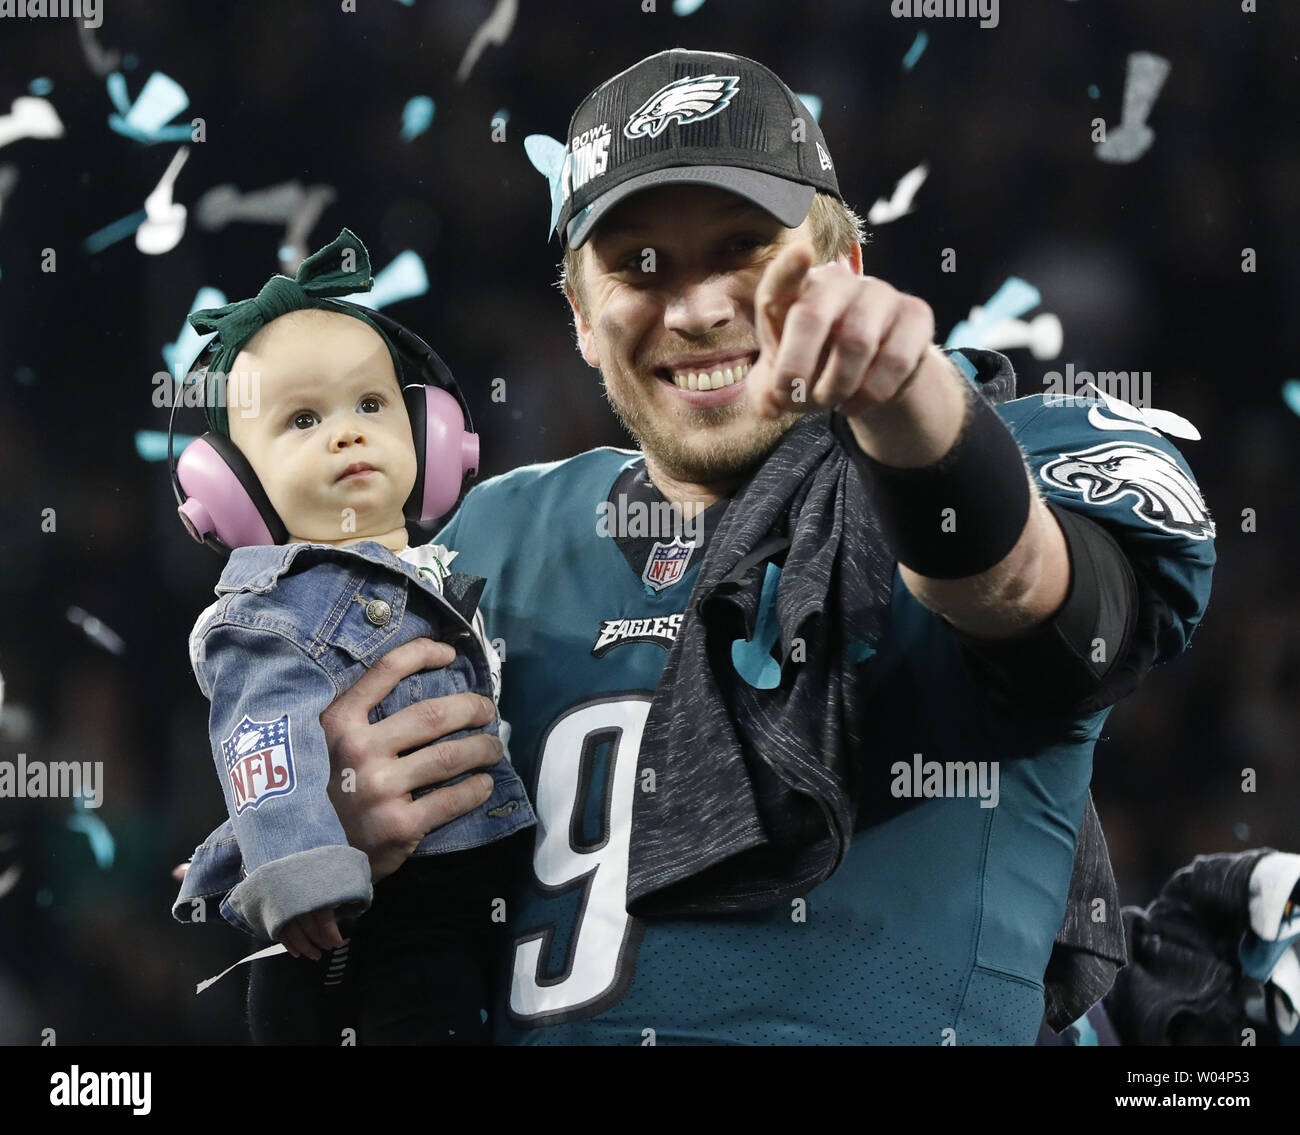 Philadelphia Eagles quarterback Nick Foles (9) reacts as he holds his daughter, Lily James, after Super Bowl LII at U.S. Bank Stadium in Minneapolis, Minnesota on February 4, 2018.  The Philadelphia Eagles won 41-33 for their first Super Bowl in 52 years.  Photo by John Angelillo/UPI - Stock Image